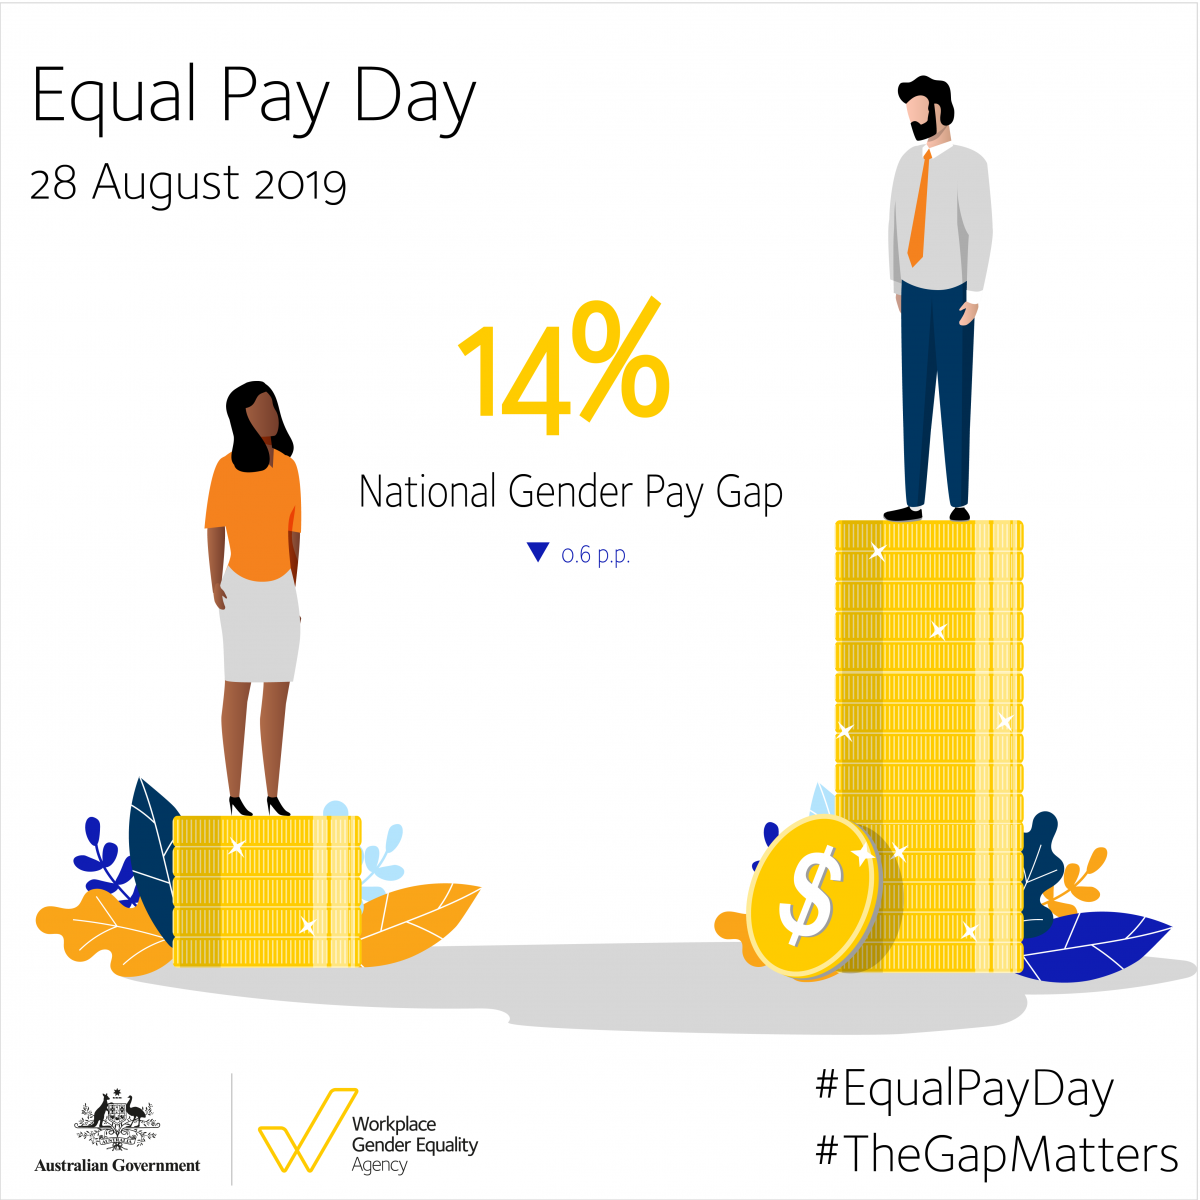 Equal Pay Day 2019 - 14% gender pay gap